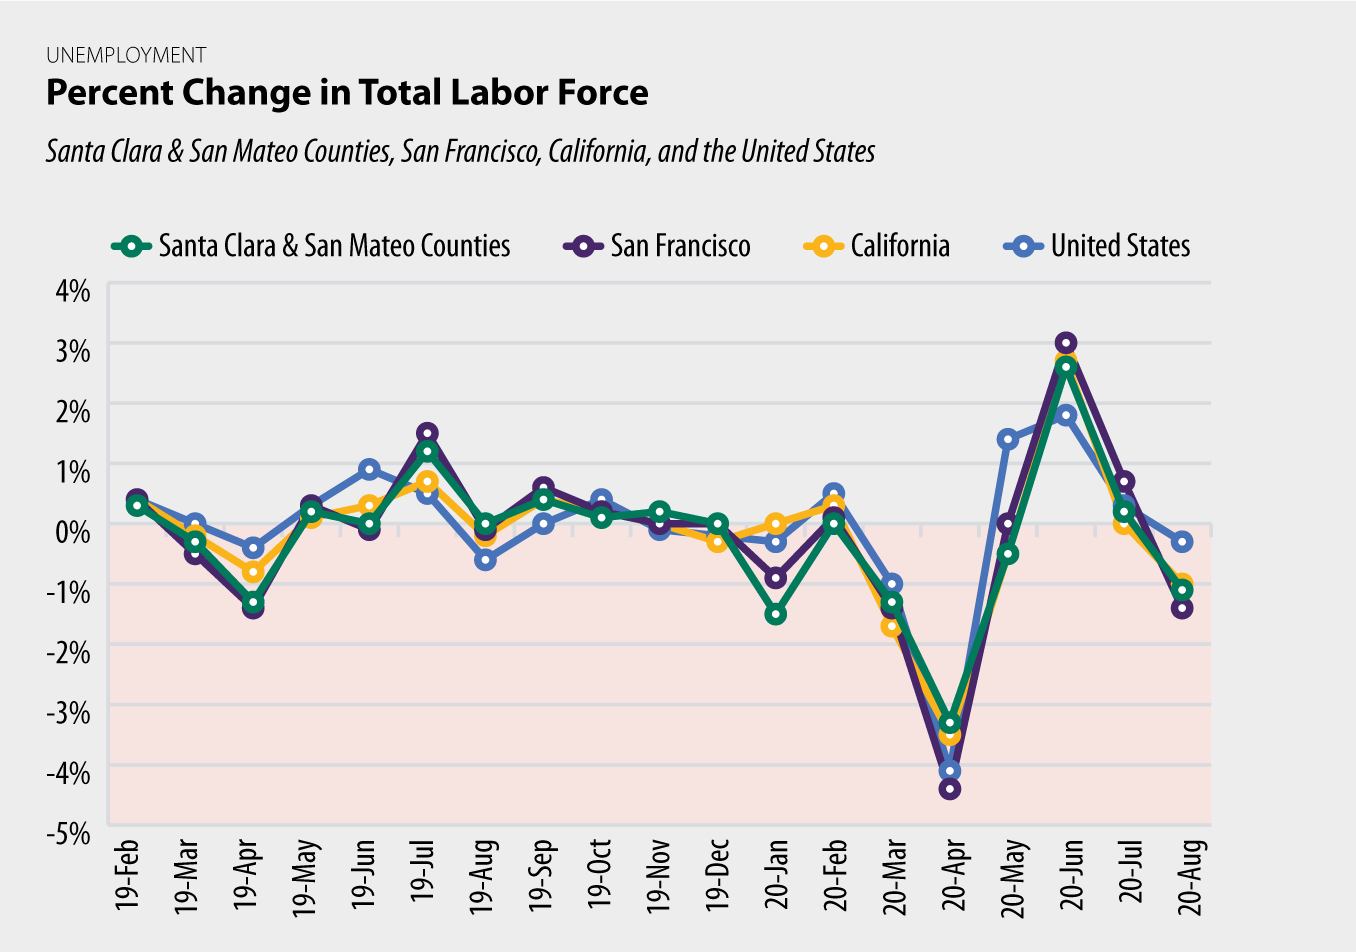 Percent Change in Total Labor Force chart